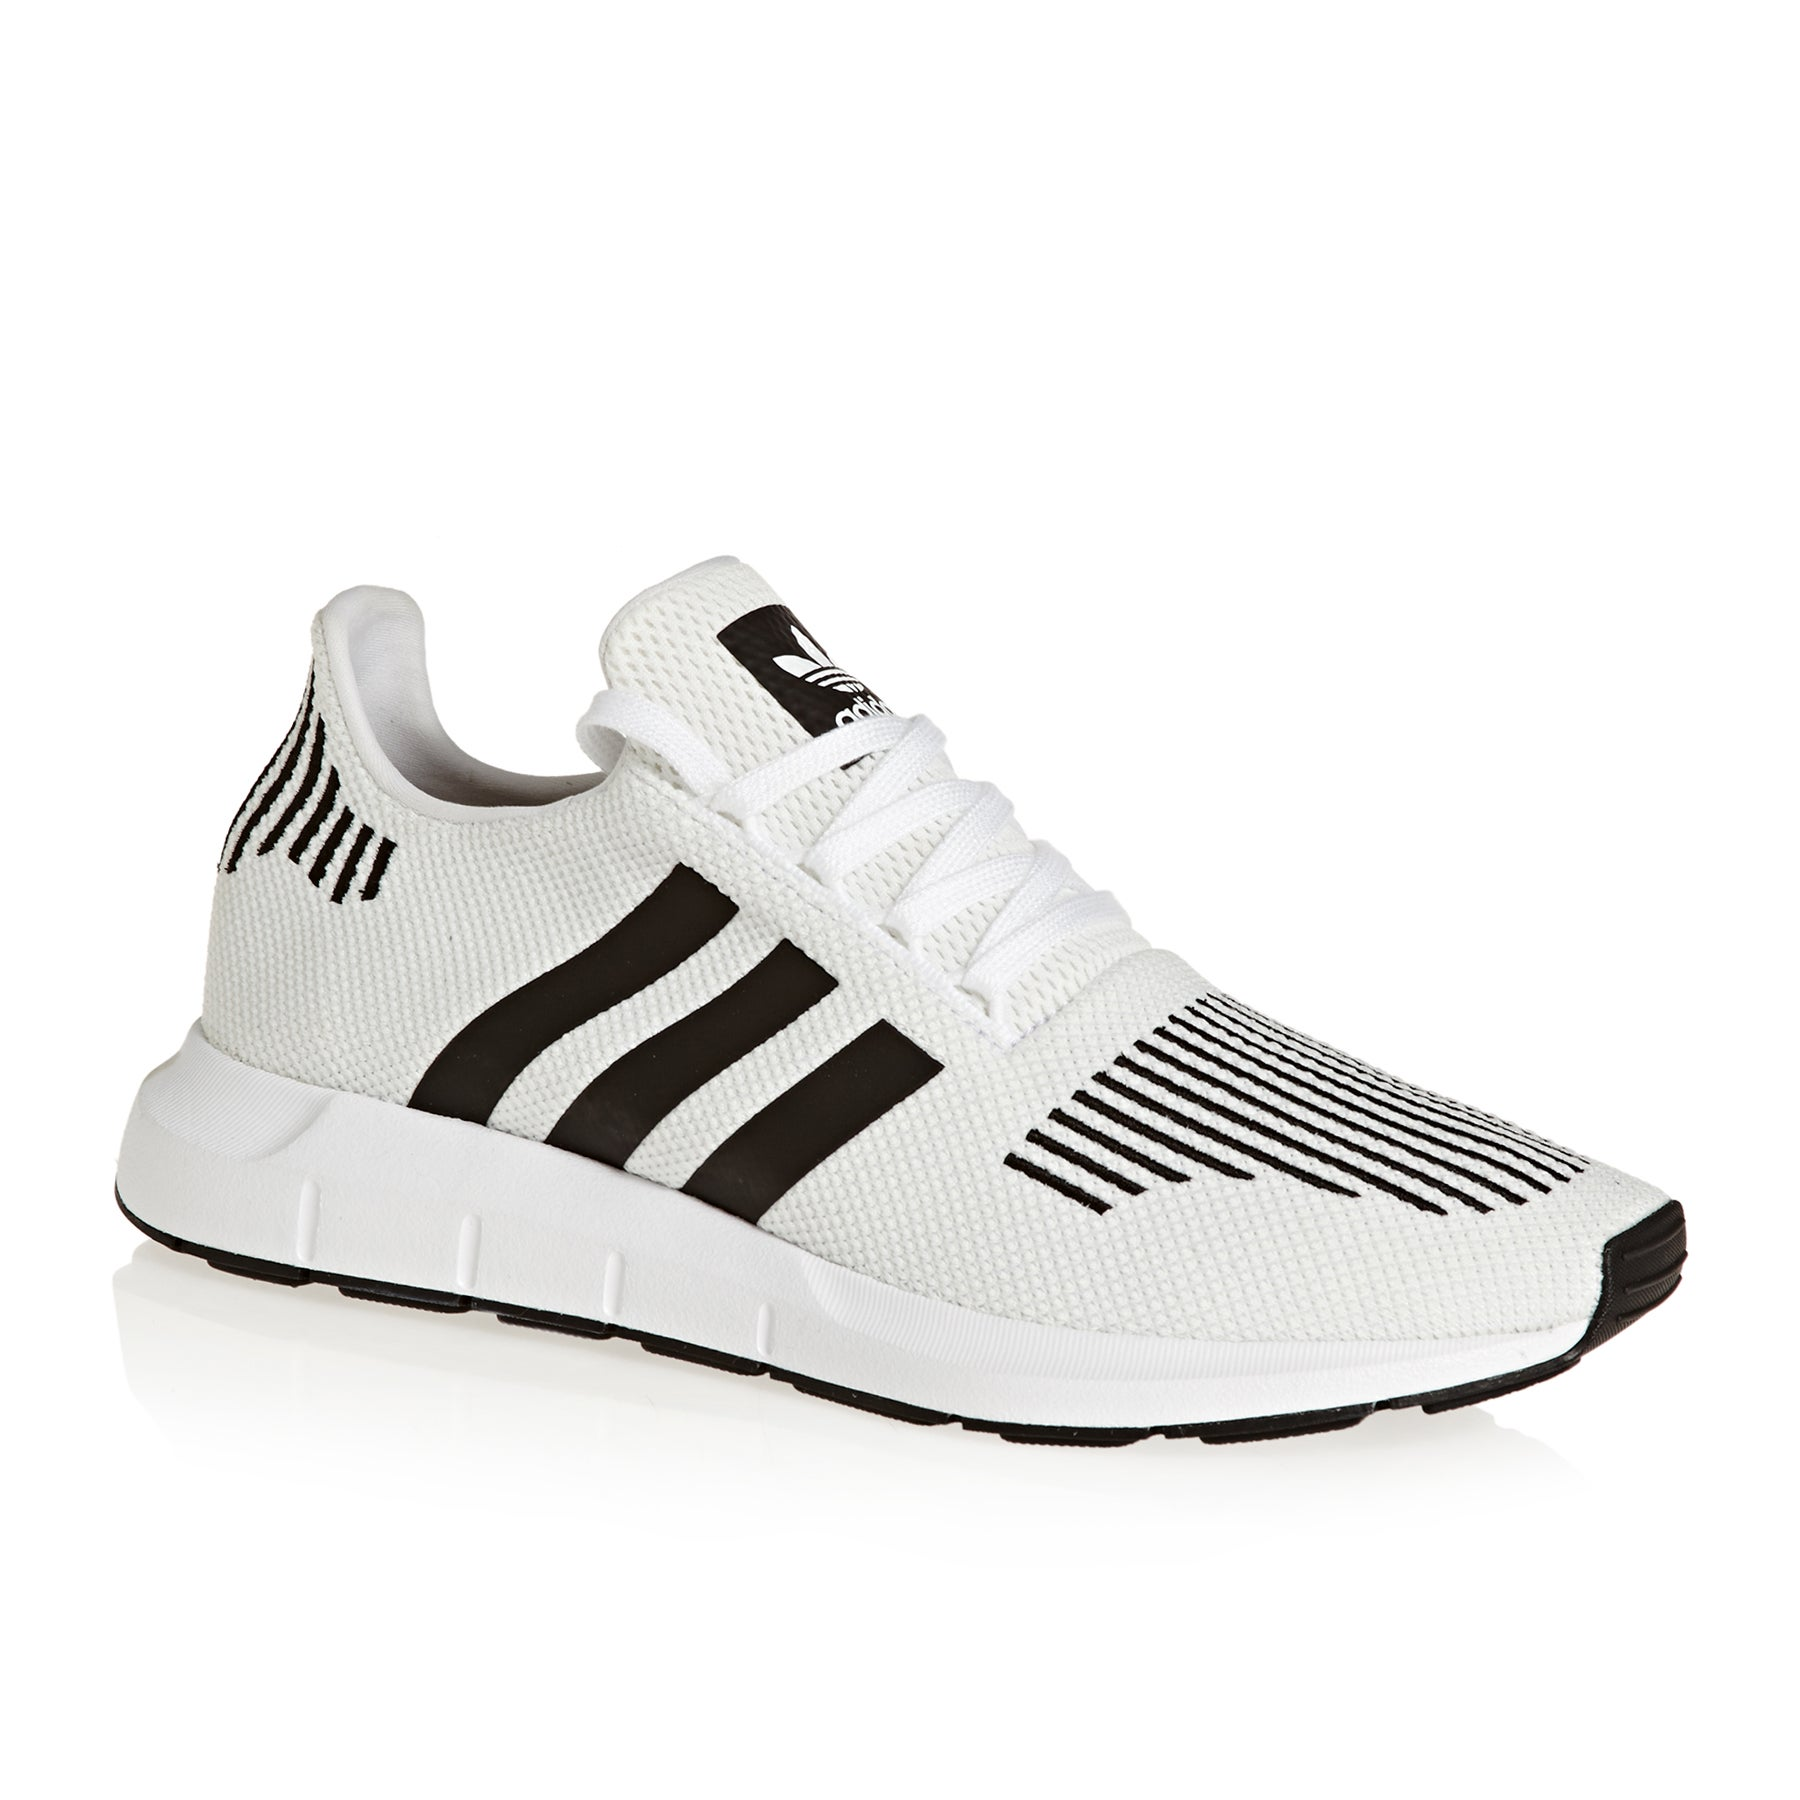 8beac0336f88 Adidas Originals Swift Run Shoes available from Surfdome